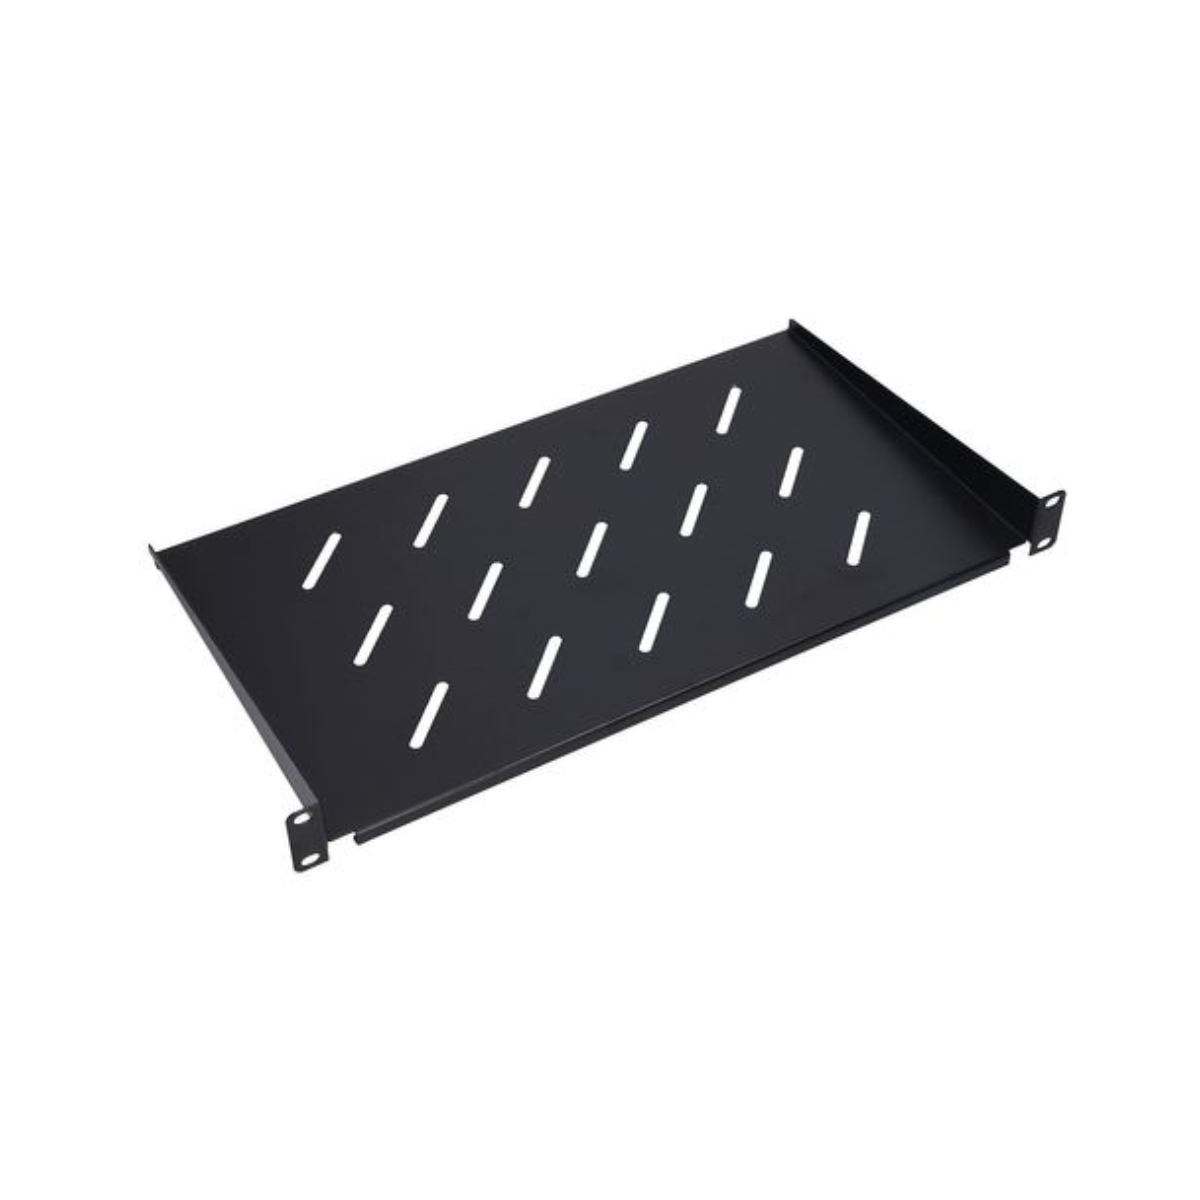 EXTRALINK SHELF 1U FOR WALL CABINETS 19""